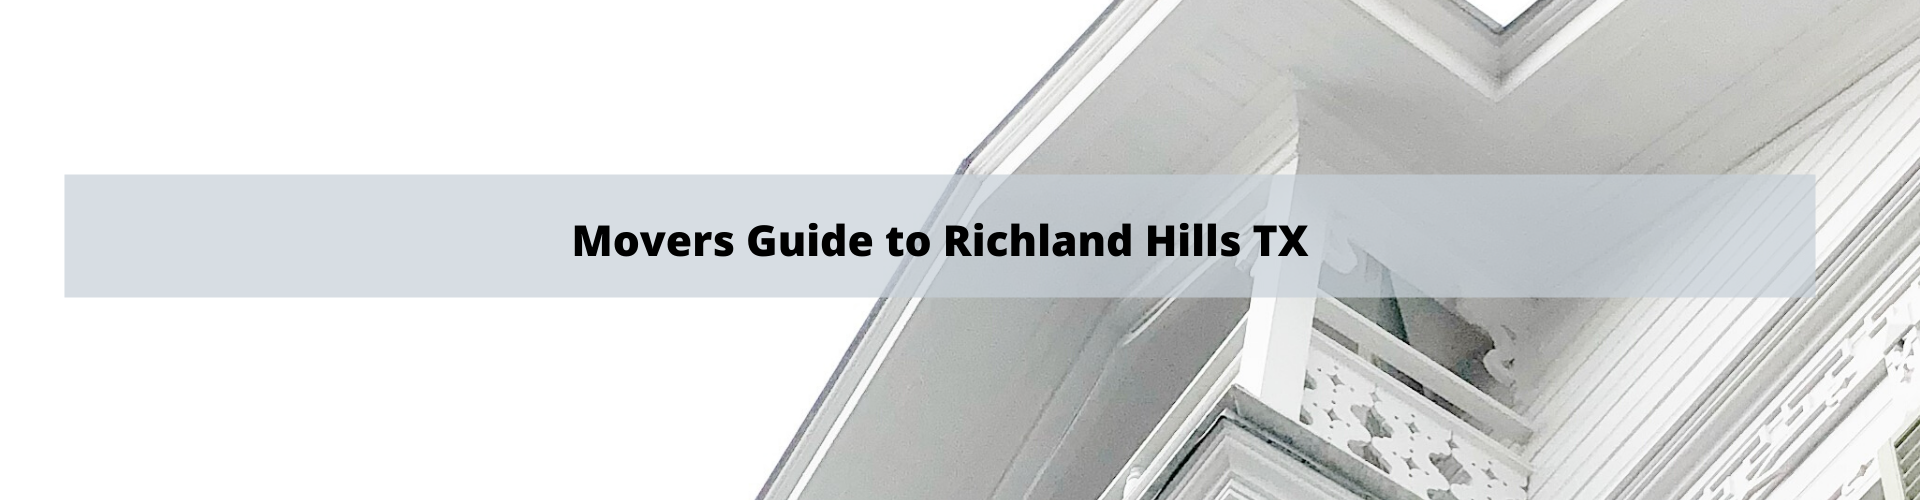 Richland Hills TX Movers Guide